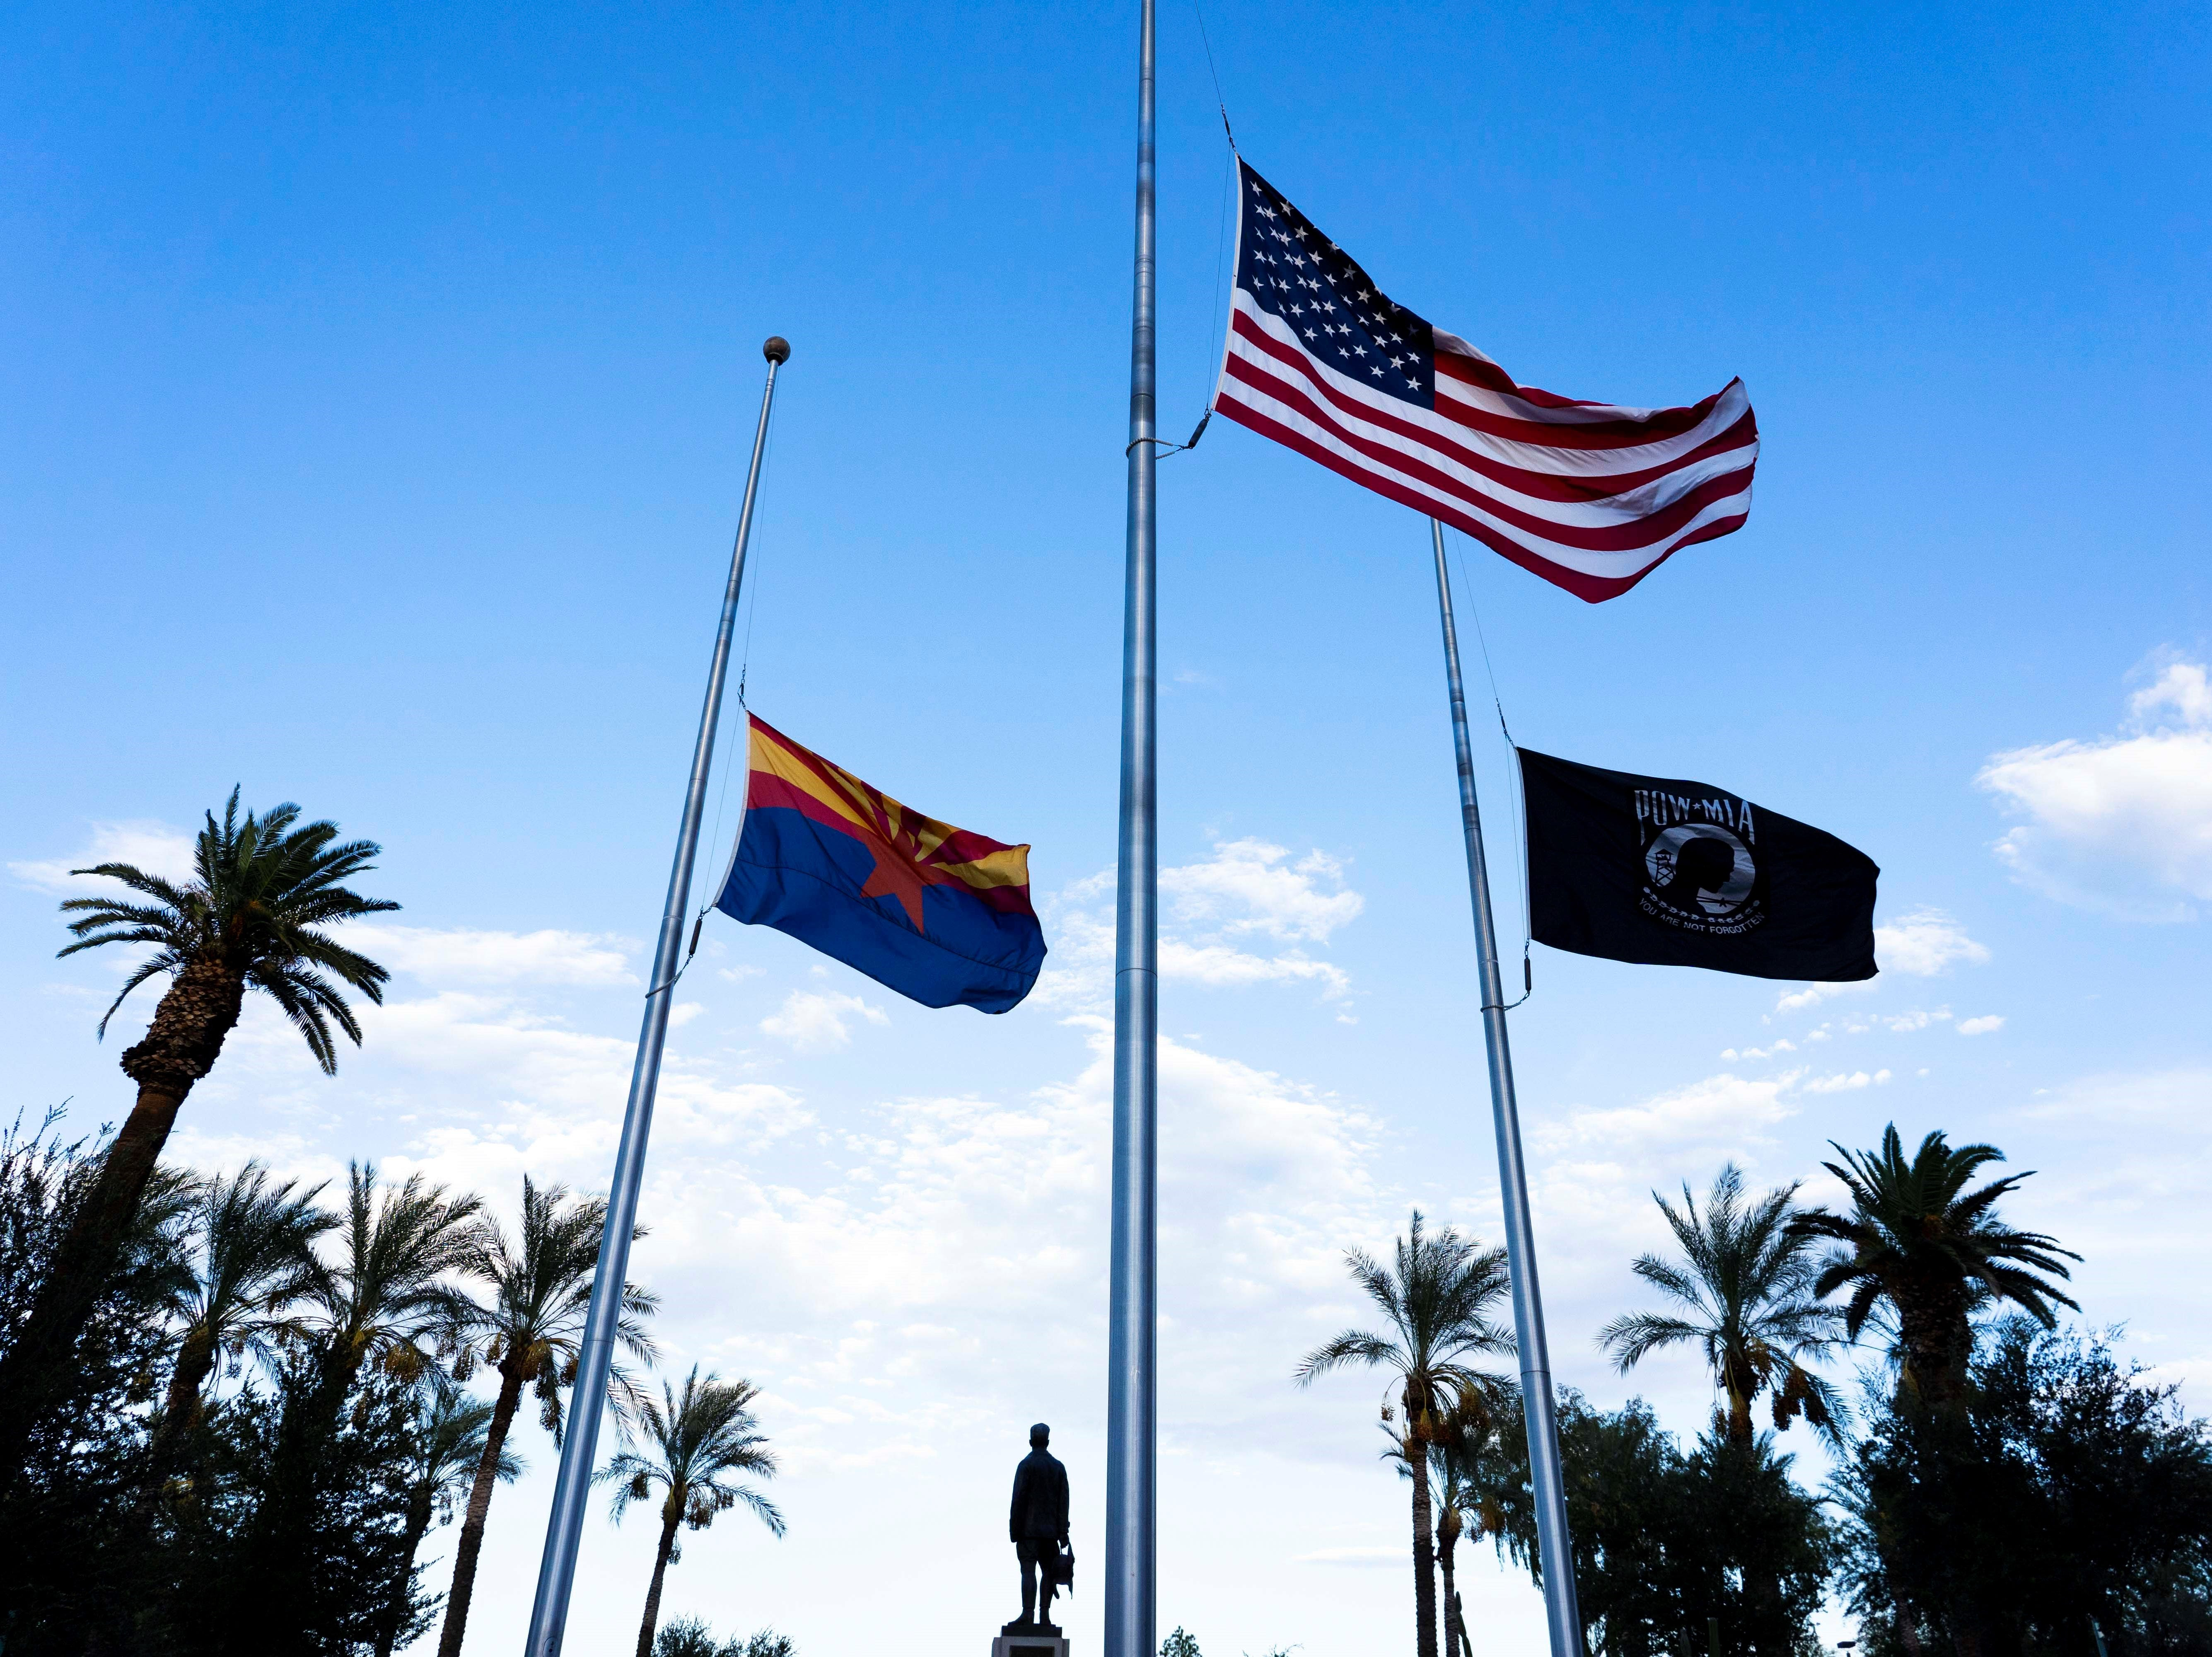 Flags were lowered at Arizona state Capitol to honor Sen. John McCain, who died Aug. 25, 2018, at age 81.